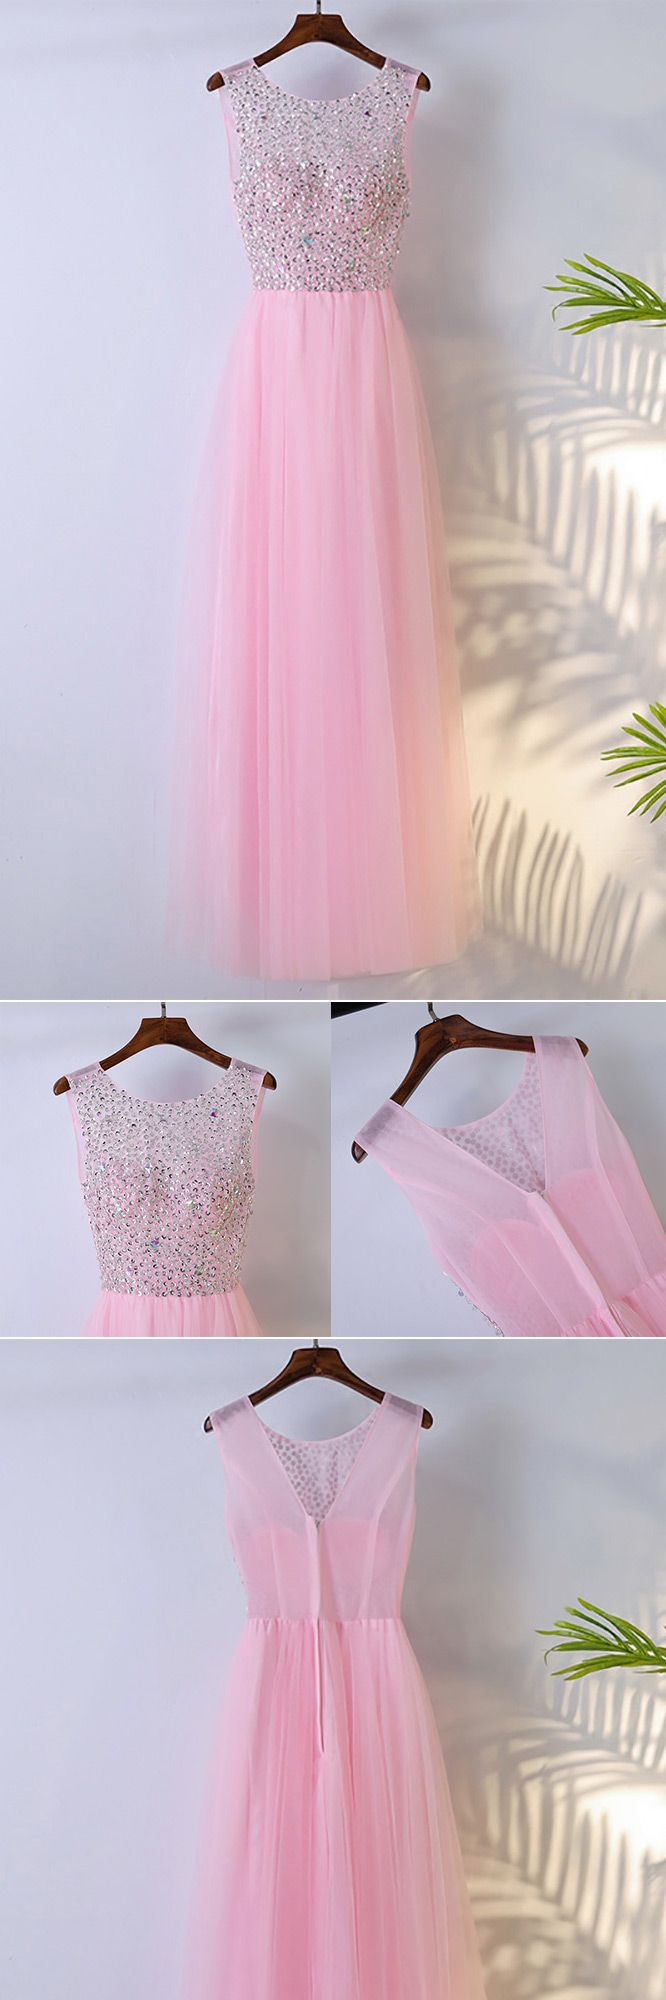 Only $109, Cute Pink Long Sleeveless Prom Dress With Bling Sequins #MYX18183 at #SheProm. SheProm is an online store with thousands of dresses, range from Prom,Party,Pink,Sparkly Dresses,Long Dresses,Customizable Dresses and so on. Not only selling formal dresses, more and more trendy dress styles will be updated daily to our store. With low price and high quality guaranteed, you will definitely like shopping from us.